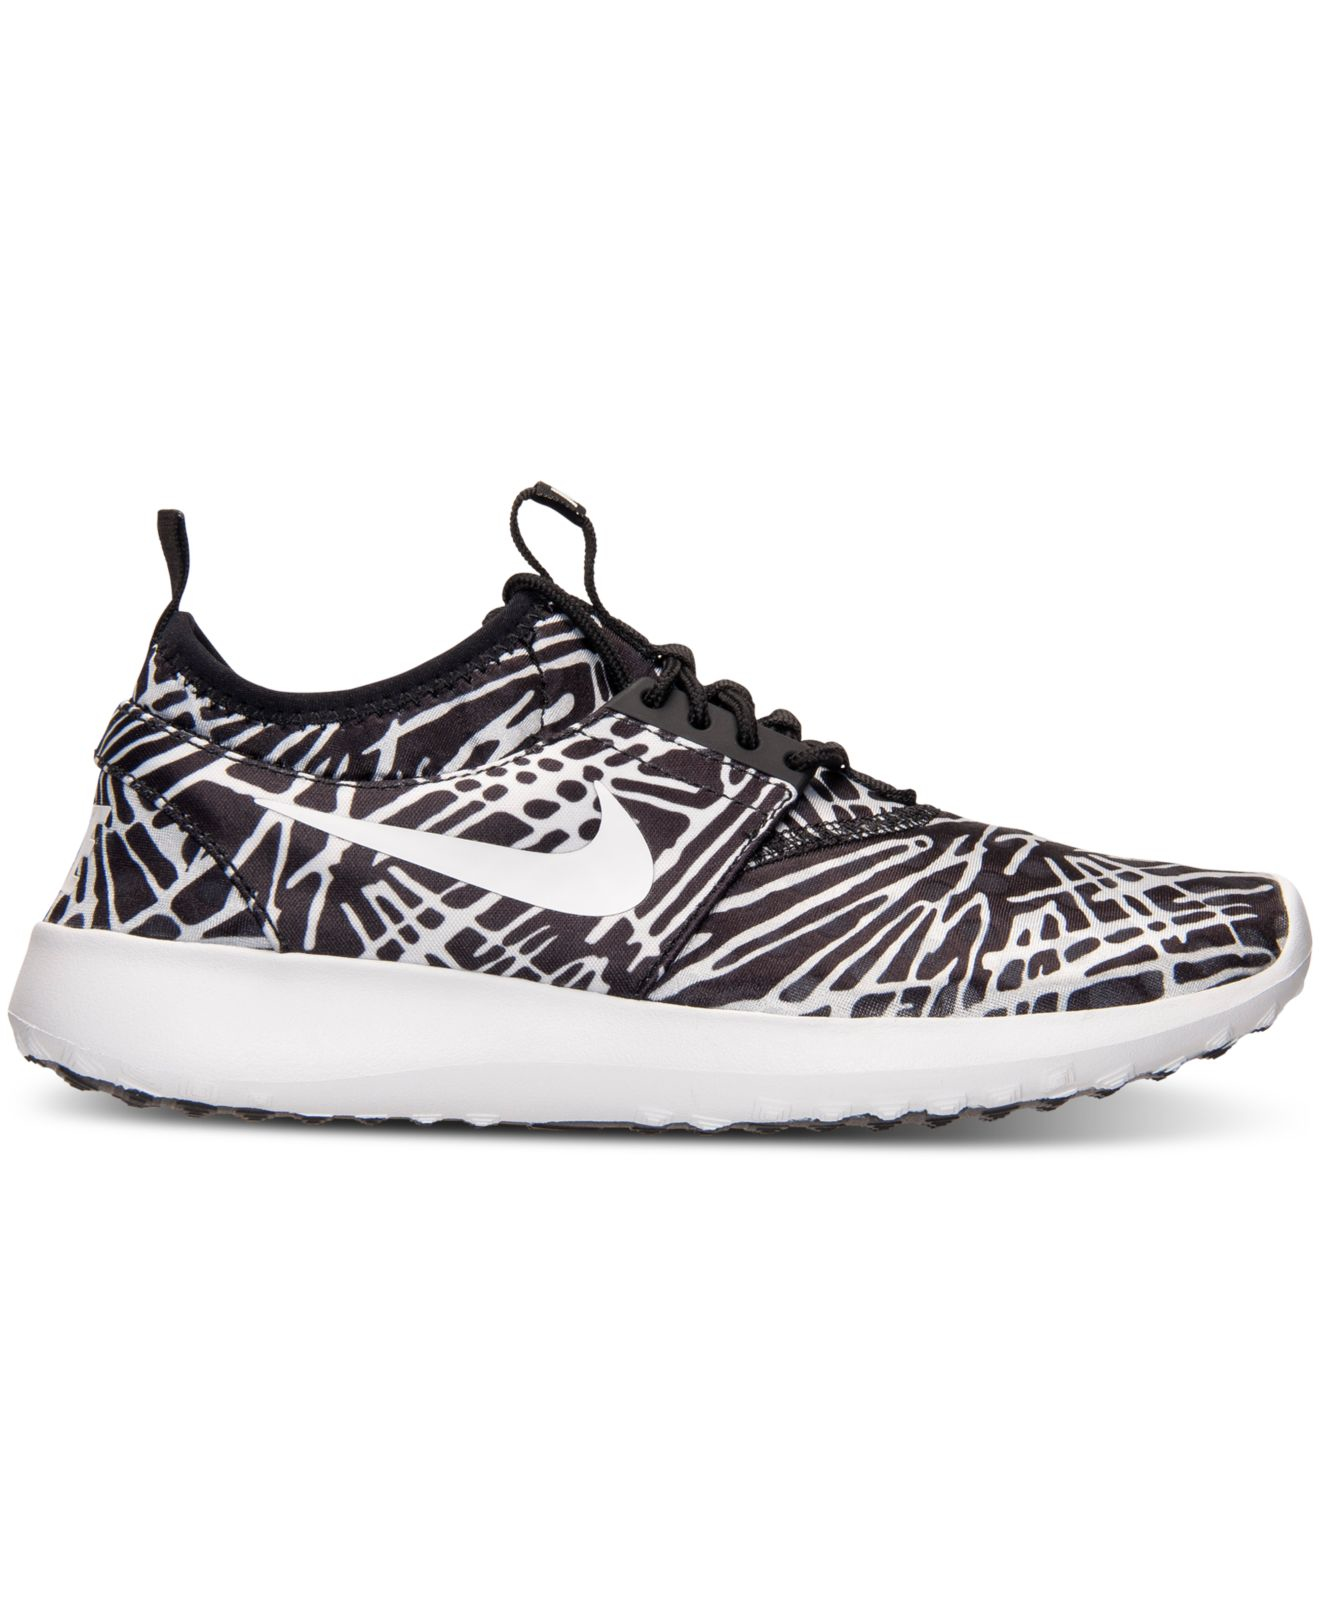 best service a2e3c 55310 Lyst - Nike Women s Juvenate Print Casual Sneakers From Finish Line in Black